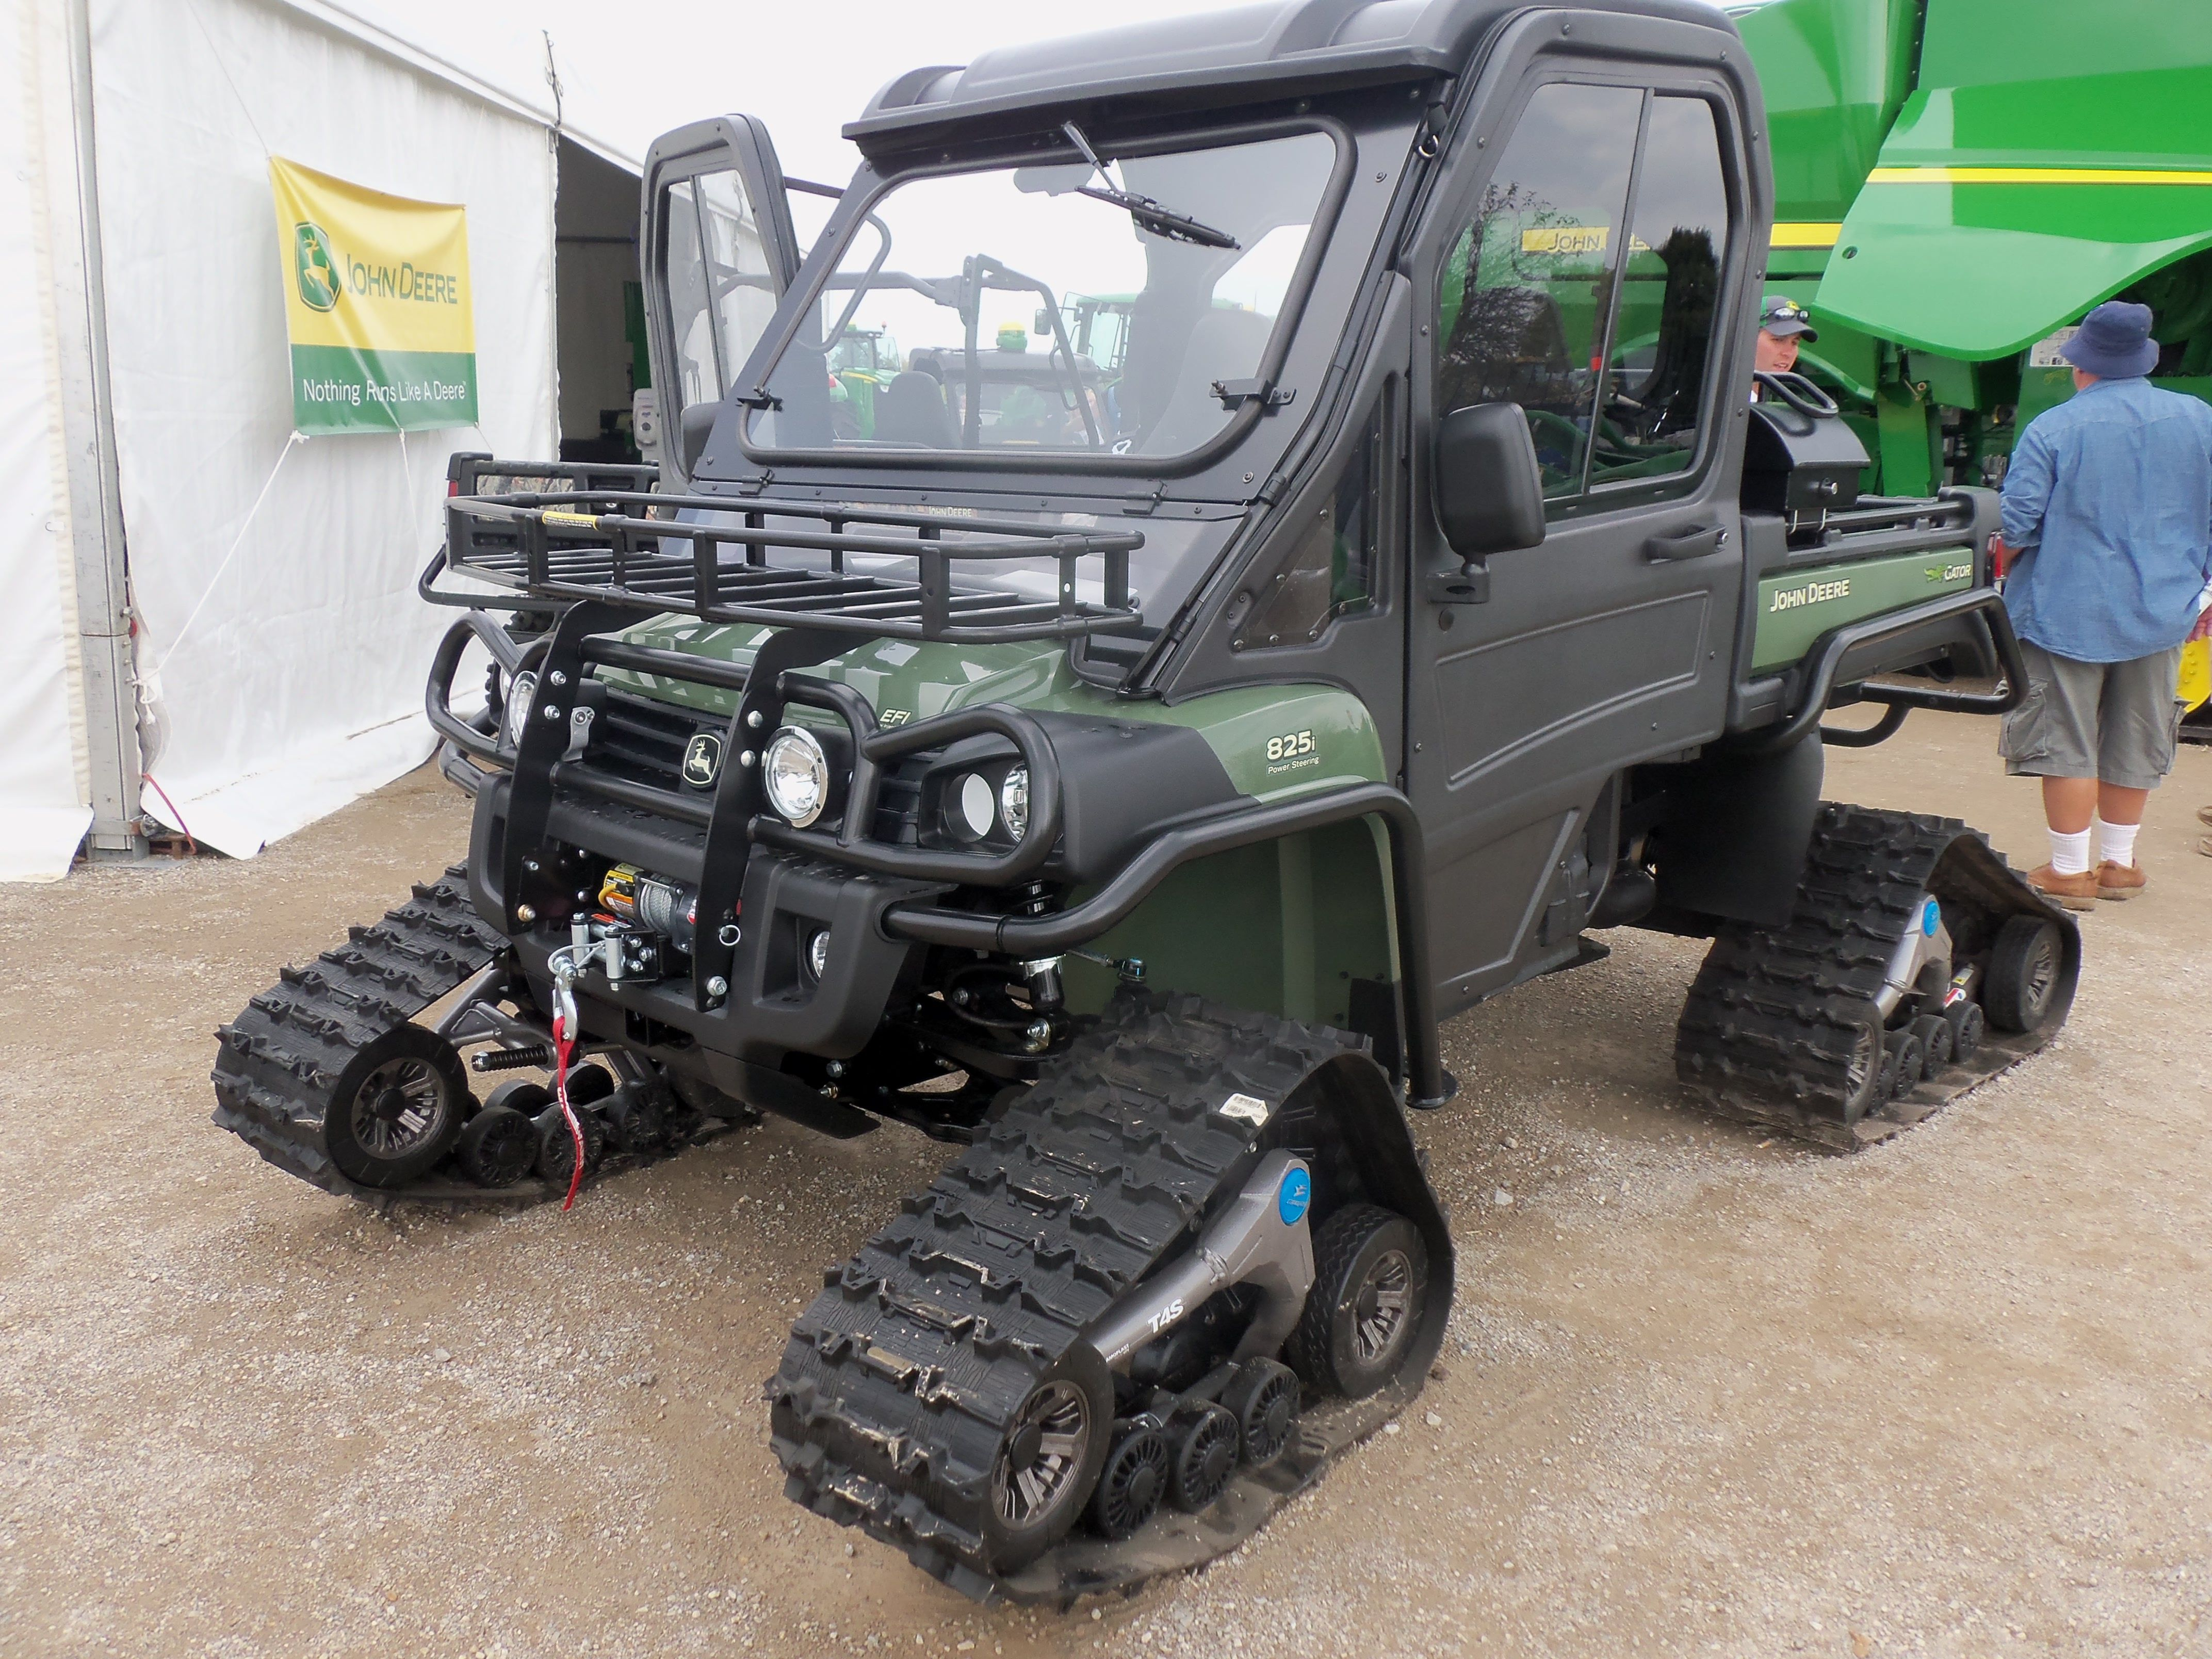 small resolution of john deere gator 825i the tracks on this gator are brand new according to the jd guy we talked to here